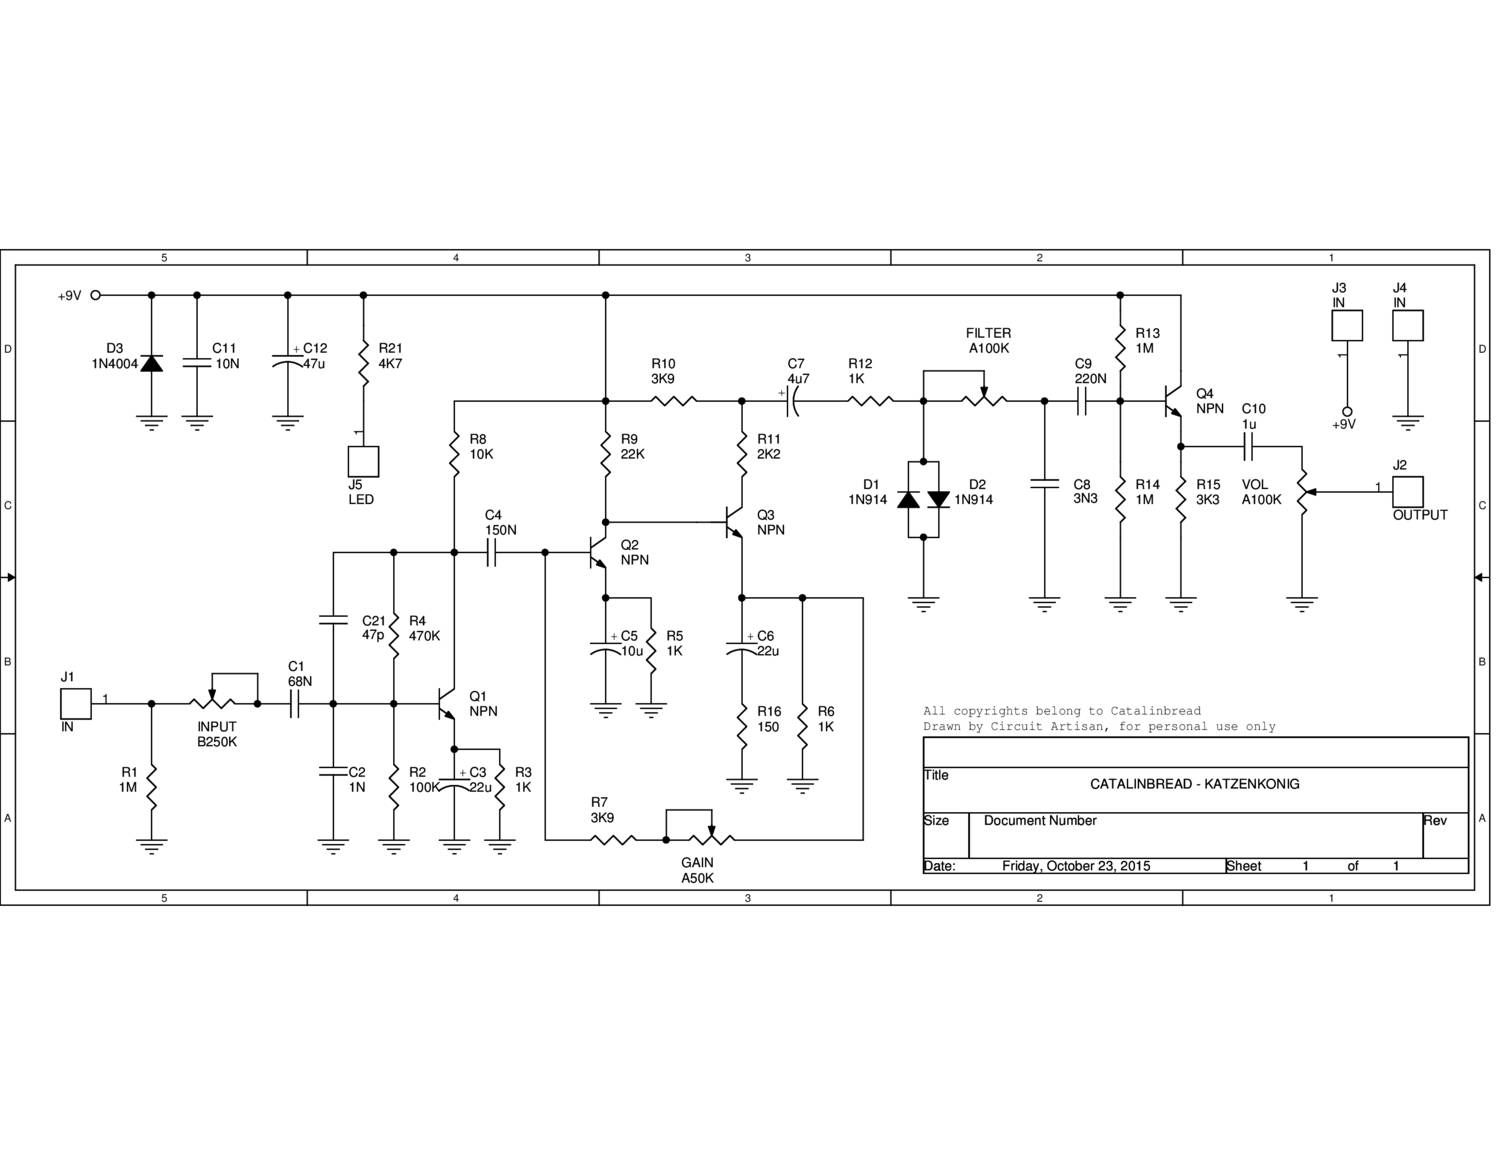 Katzenkonig Schematic Pedal Circuits And Finishes In 2018 Re Vero Wah Circuit